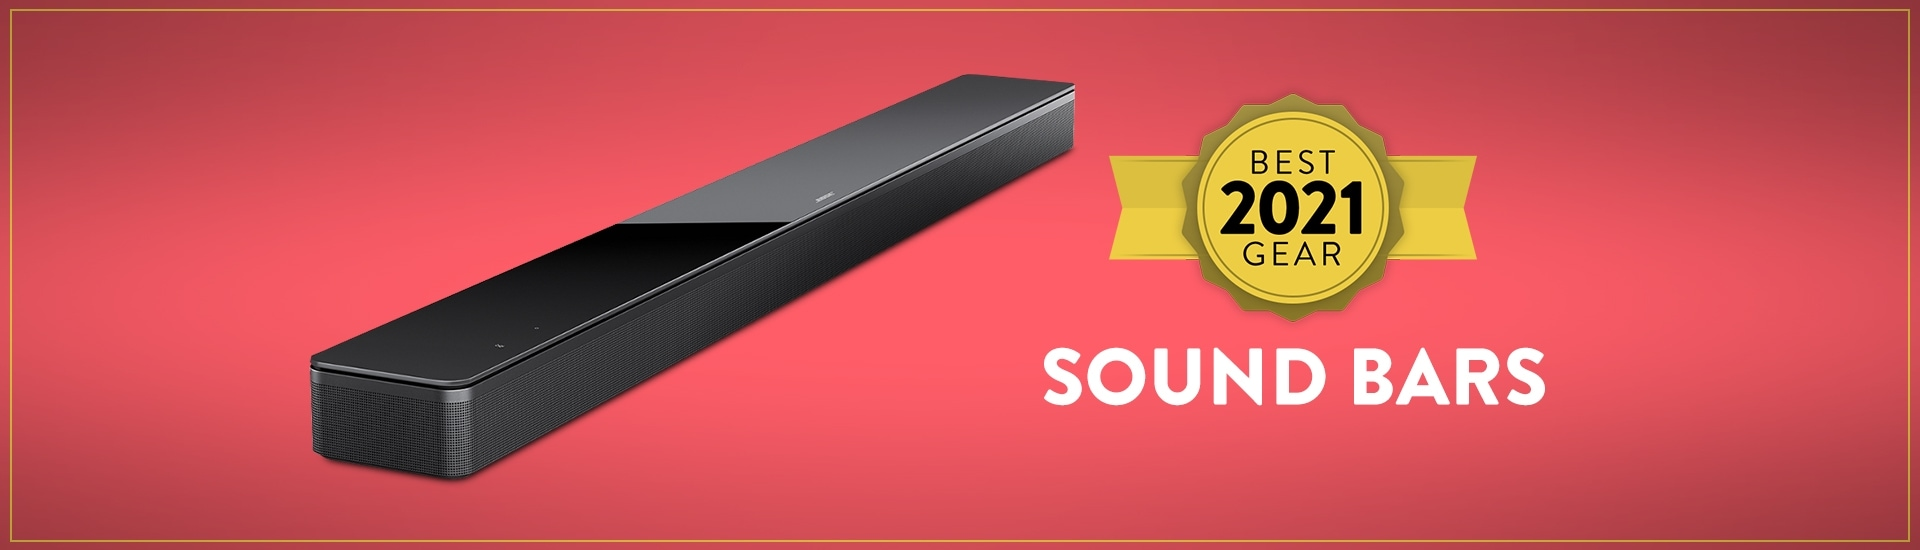 The Best Sound Bars 2021